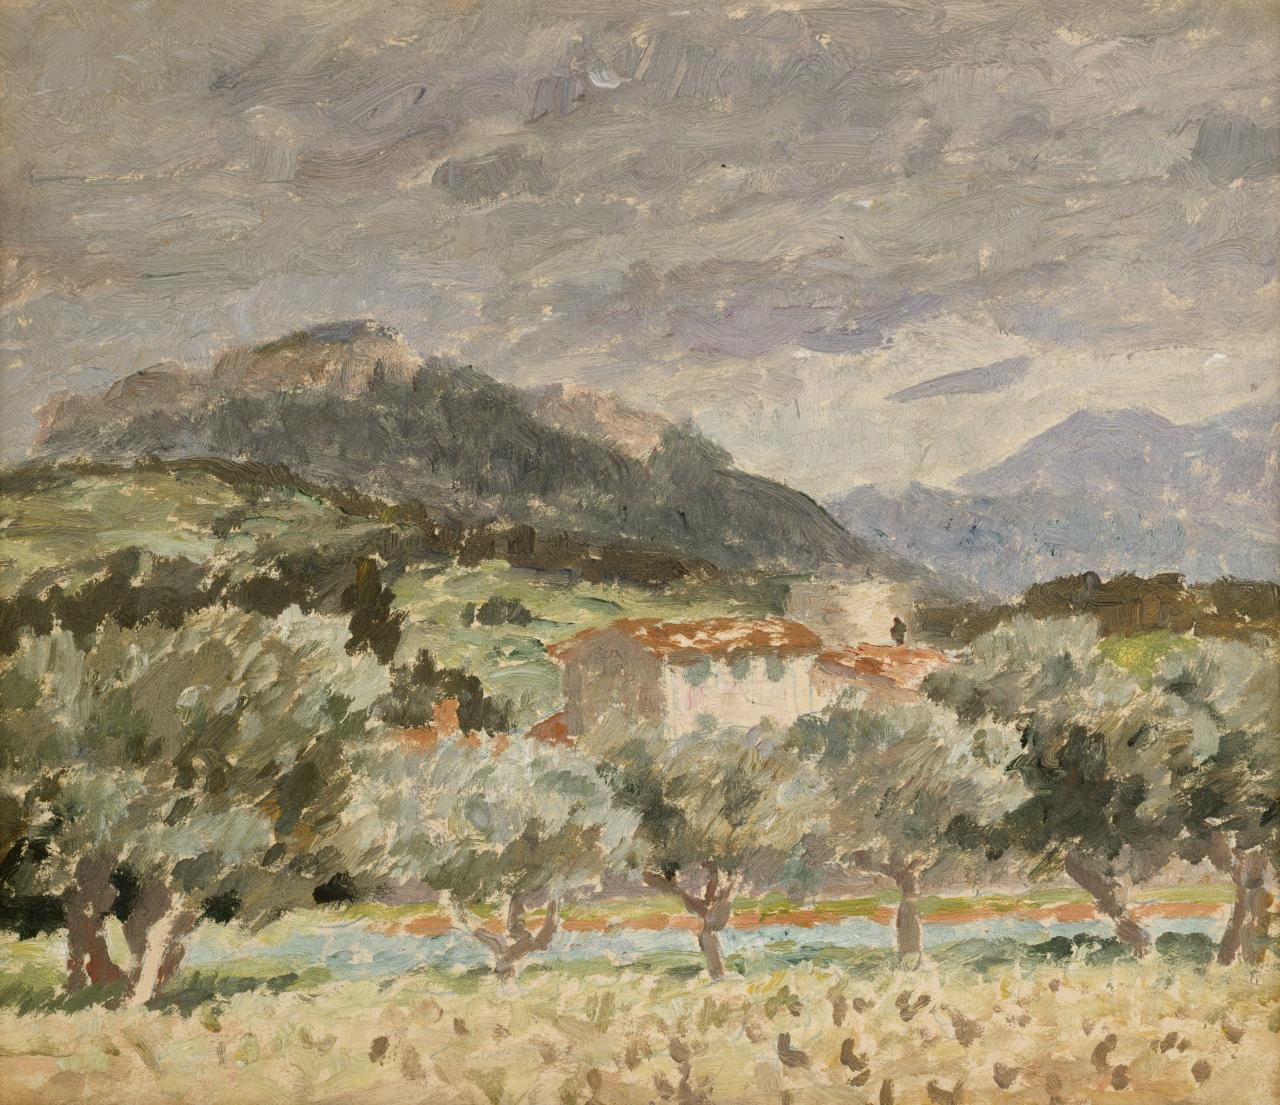 Sketch for Farm house and olive trees, near Cassis